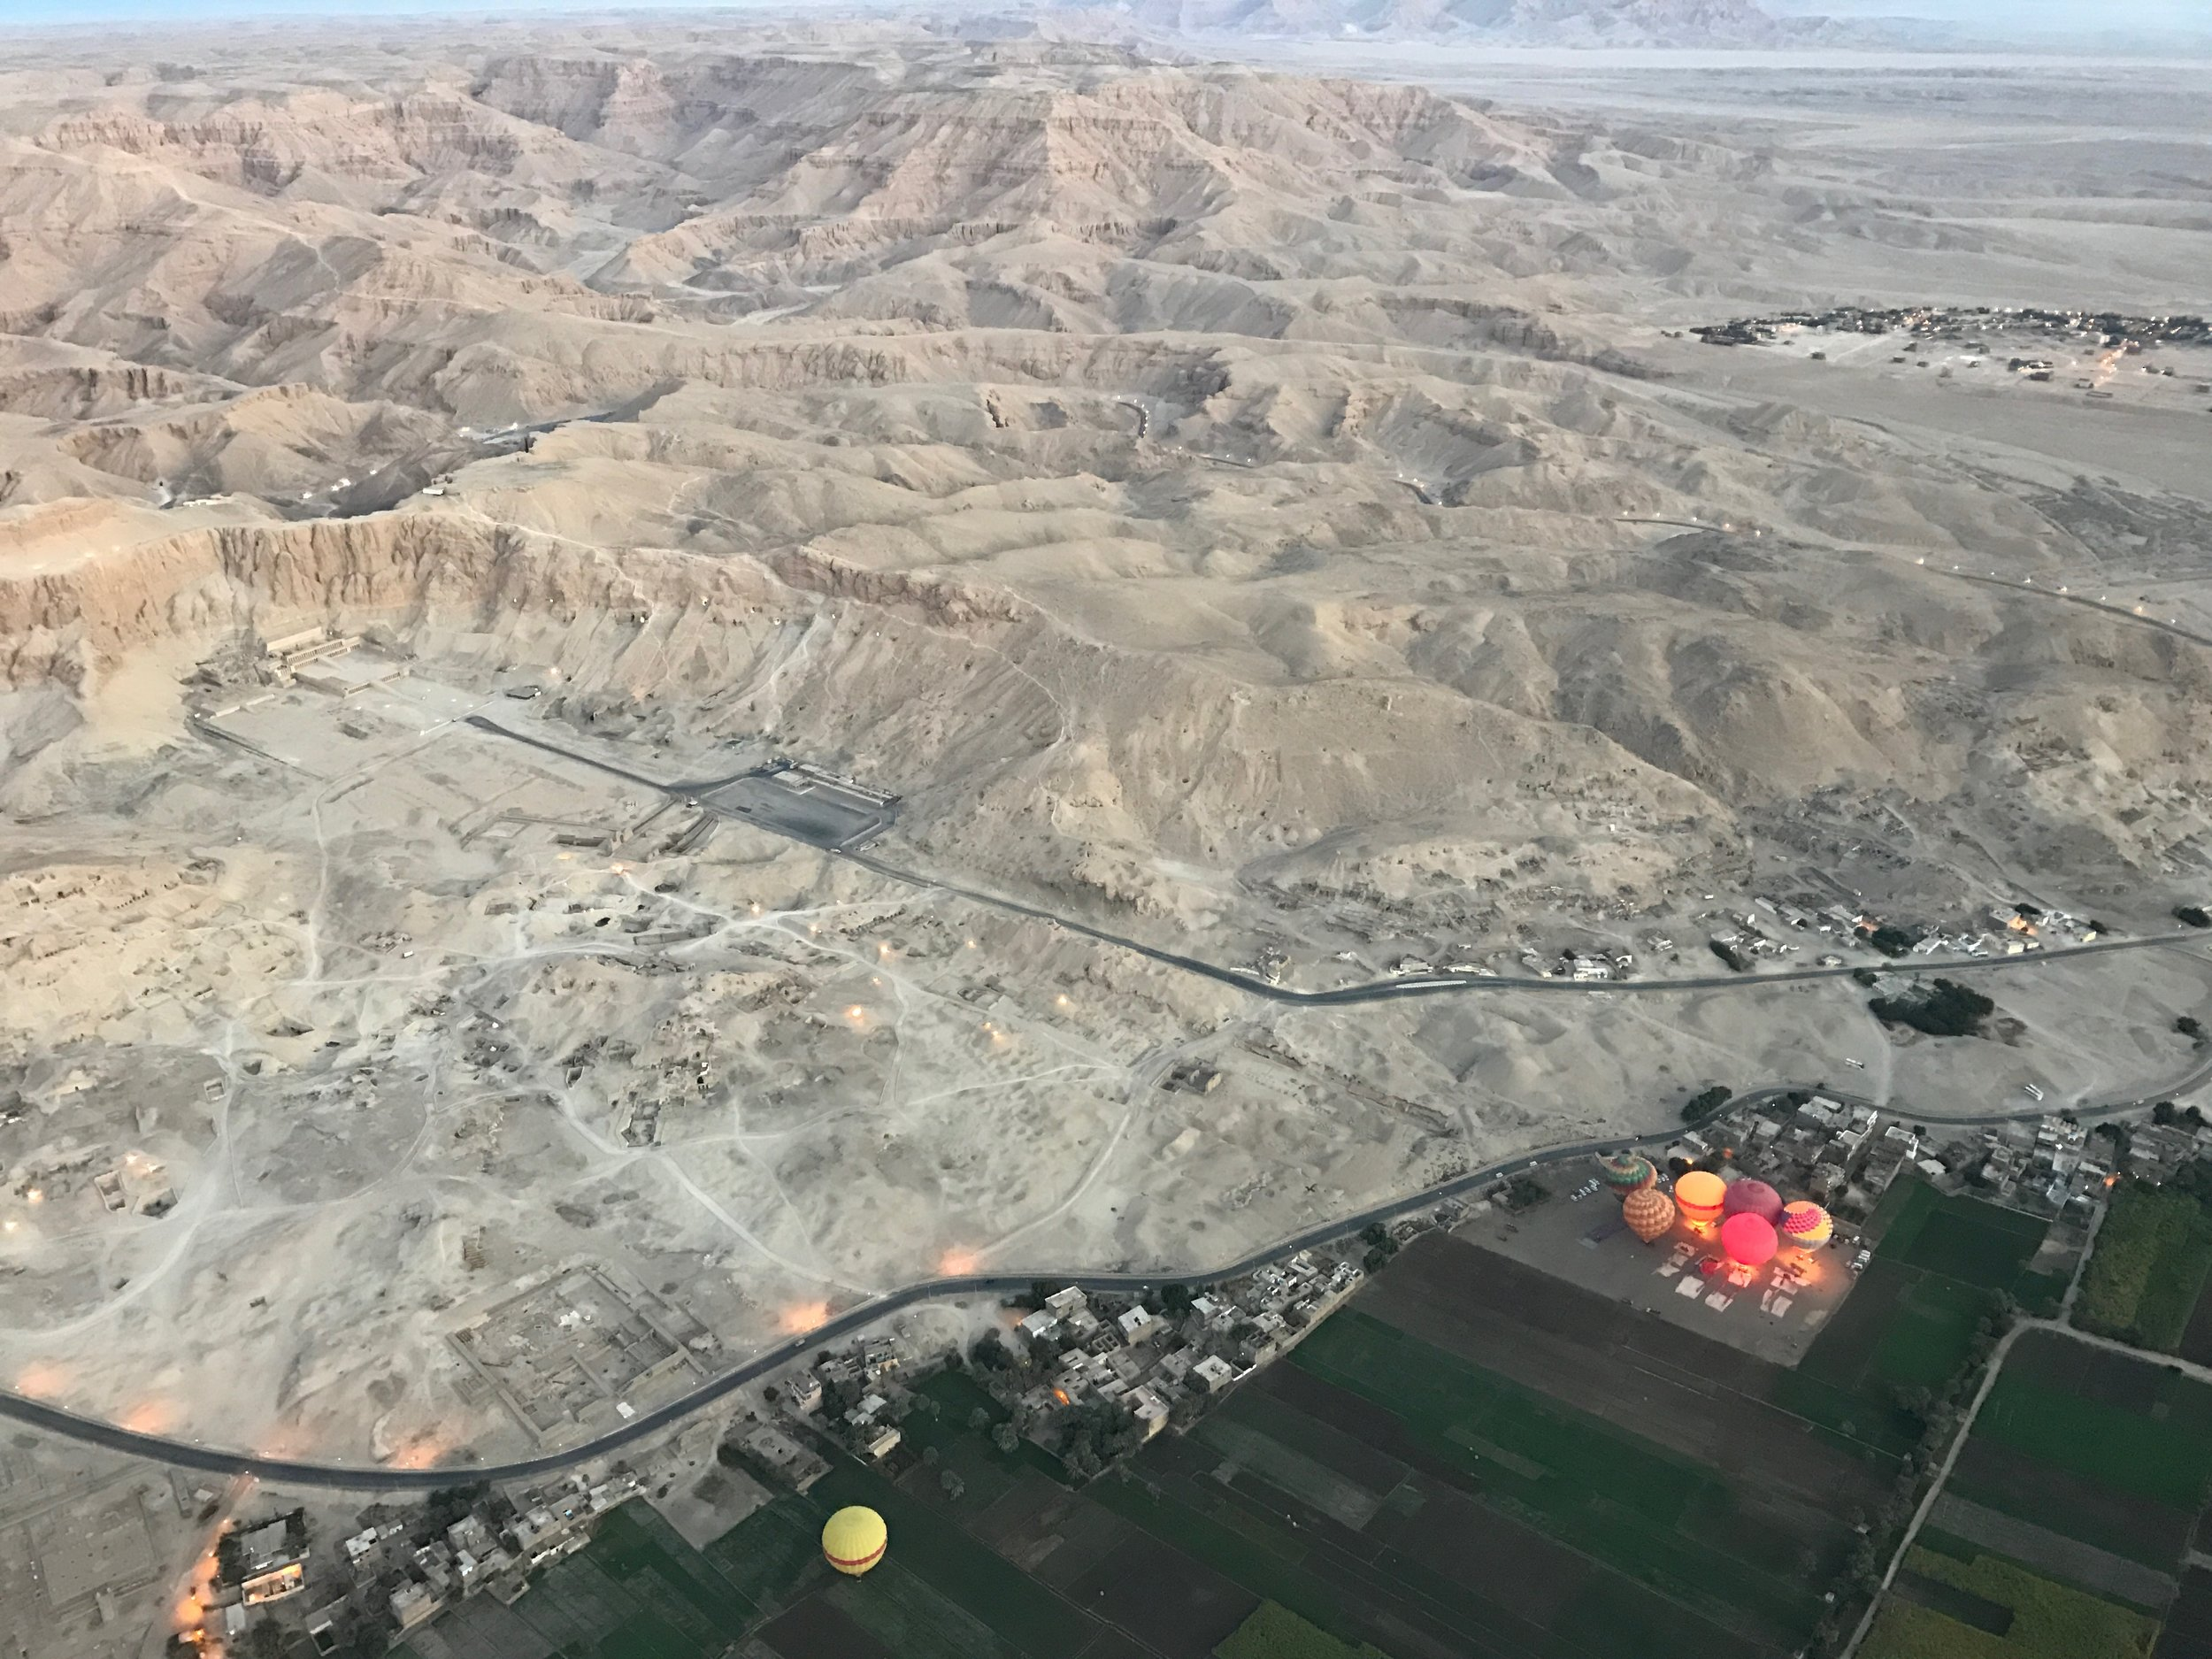 Hot air balloon ride over the Valley of the Kings